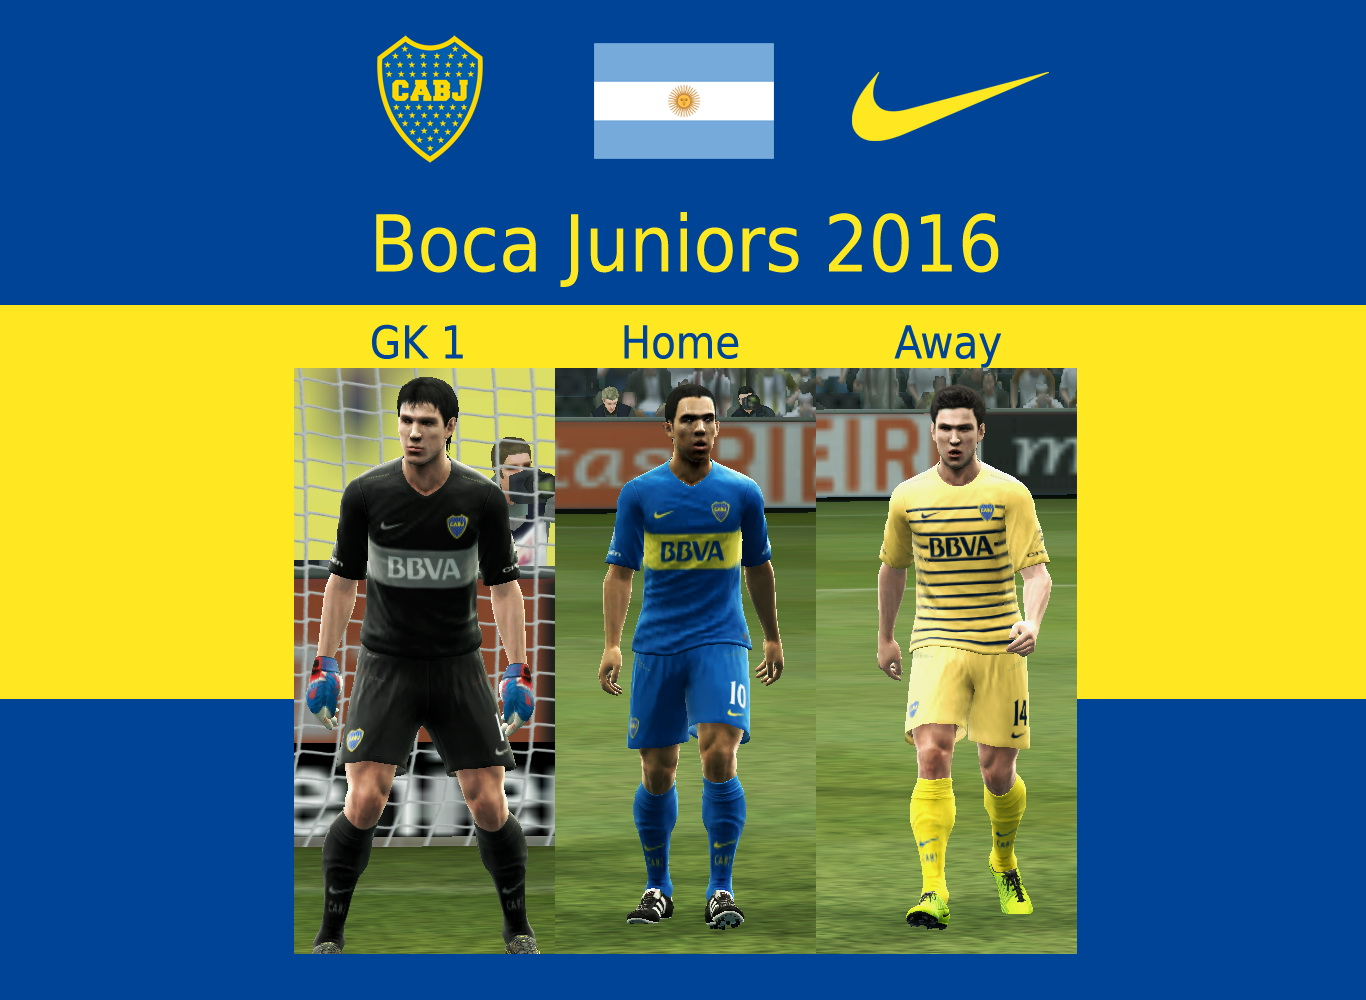 PES-MODIF: PES 2016 Boca Juniors 2016 Kits Update 1 By